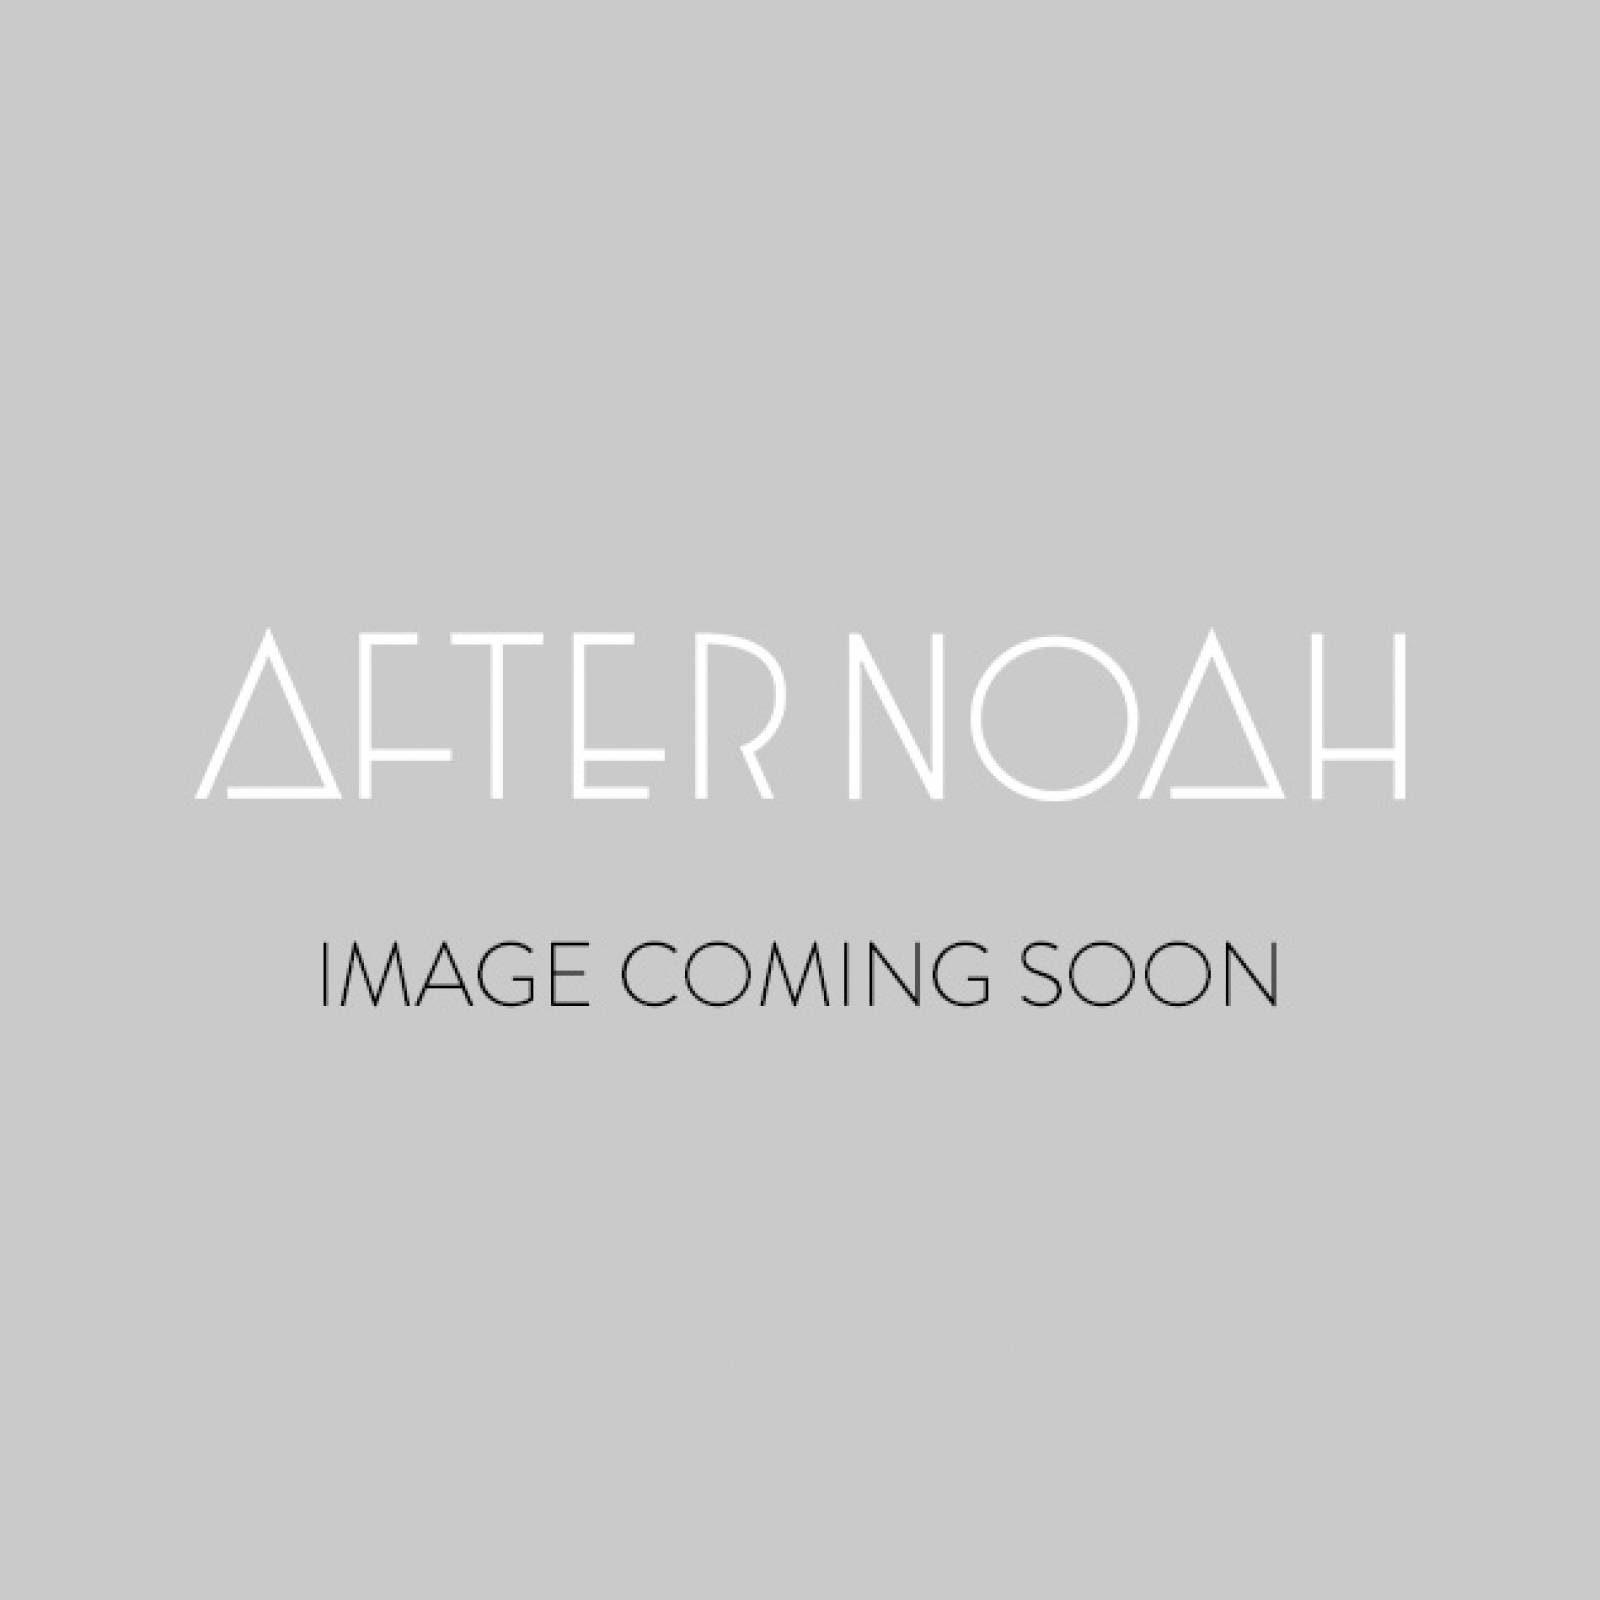 Vintage Sideboard Hairpin Legs 1970s G Plan Teak Chest Of Drawers On Hairpin Legs